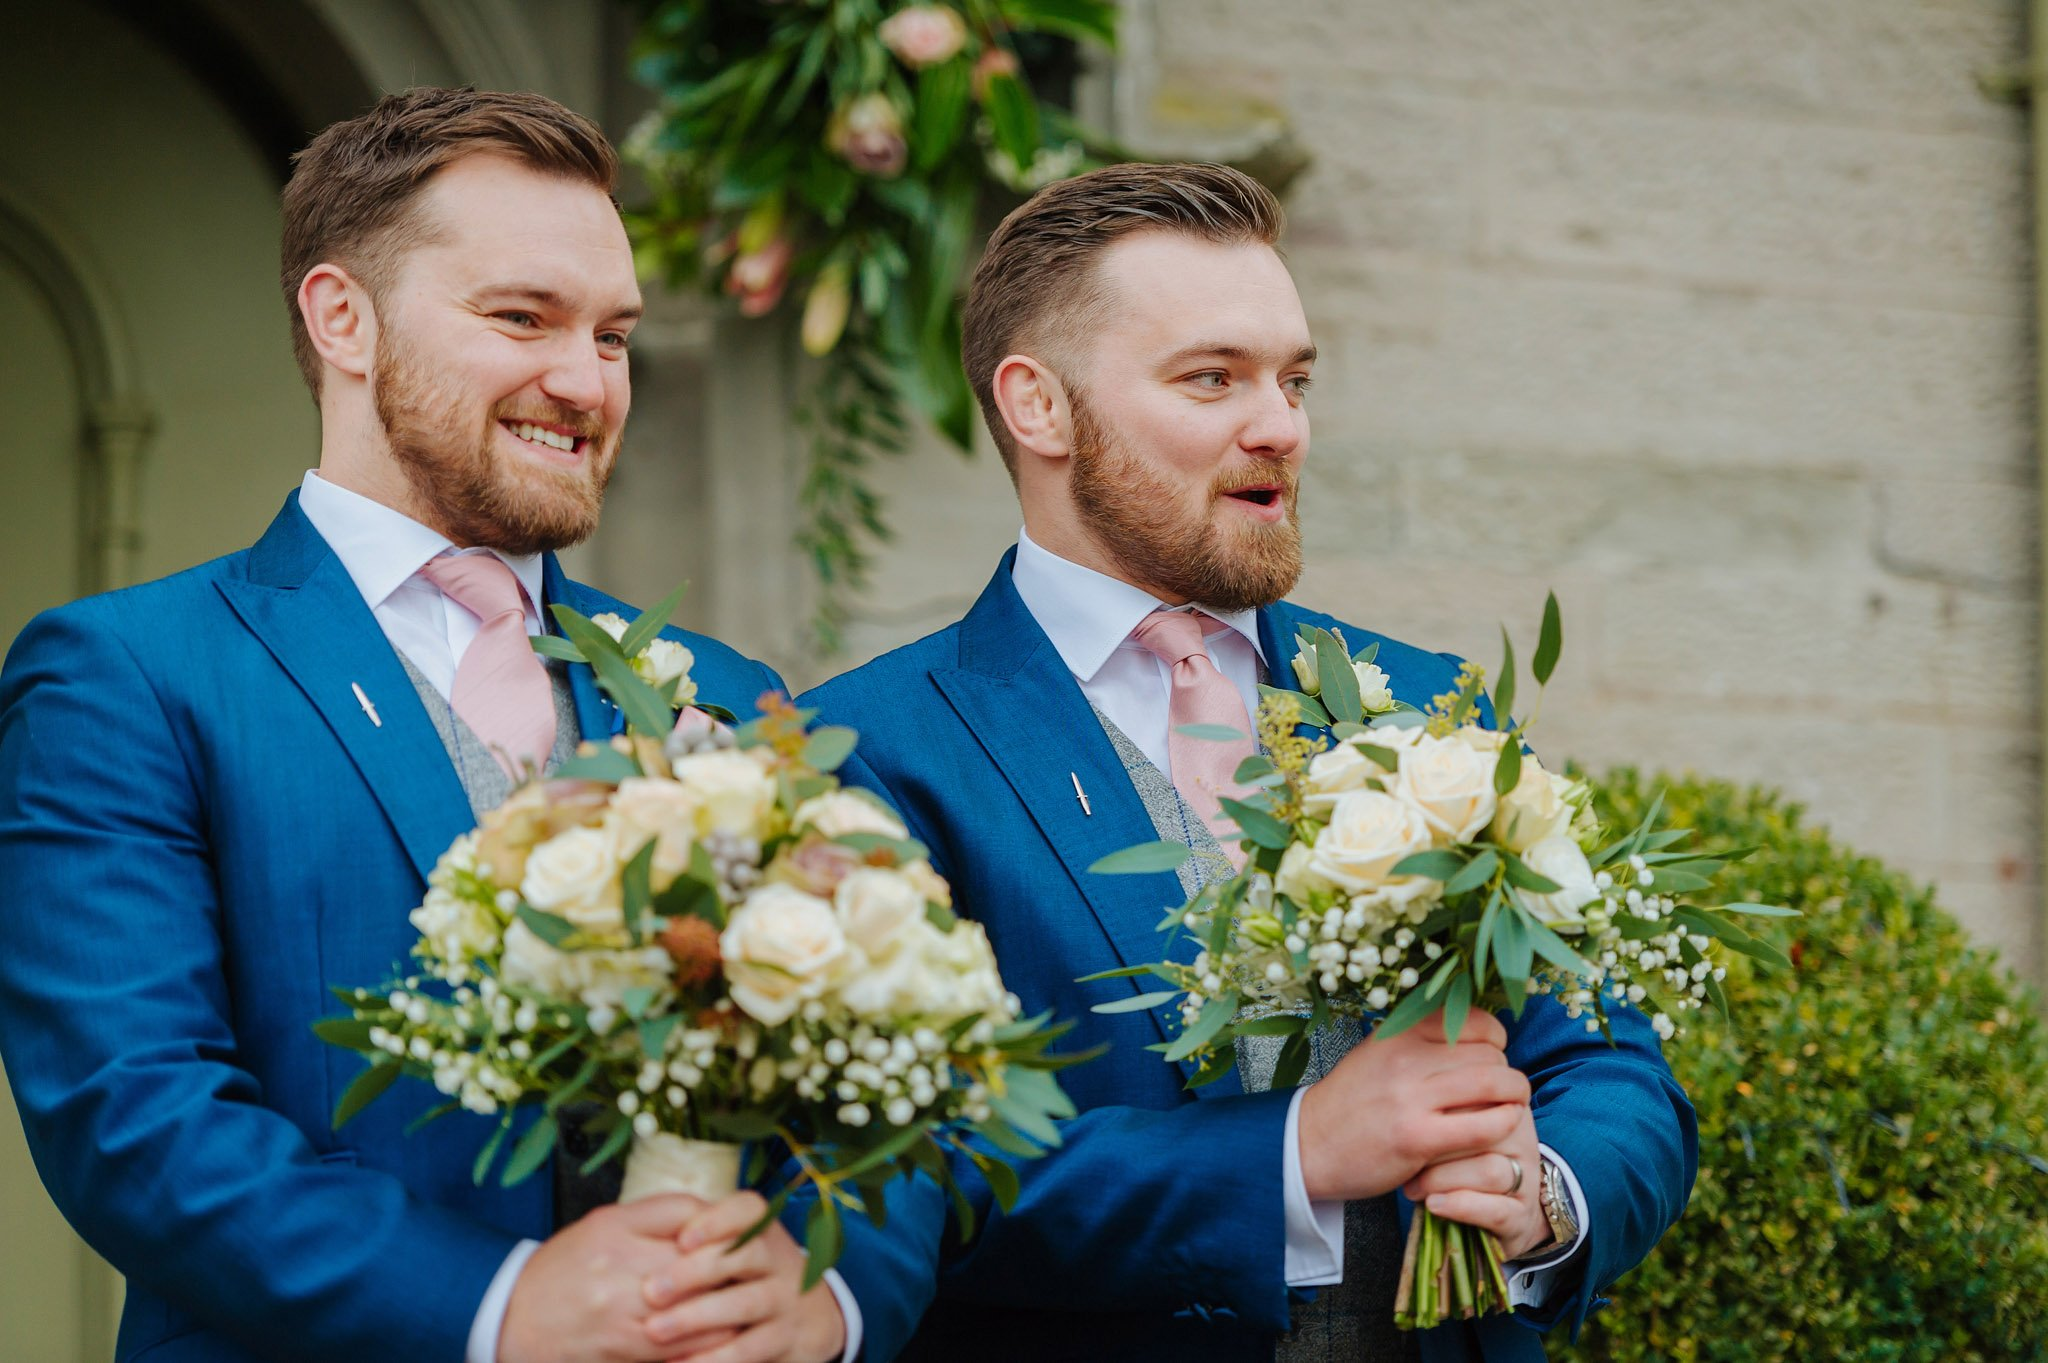 lemore manor wedding herefordshire 72 - Lemore Manor wedding, Herefordshire - West Midlands | Sadie + Ken